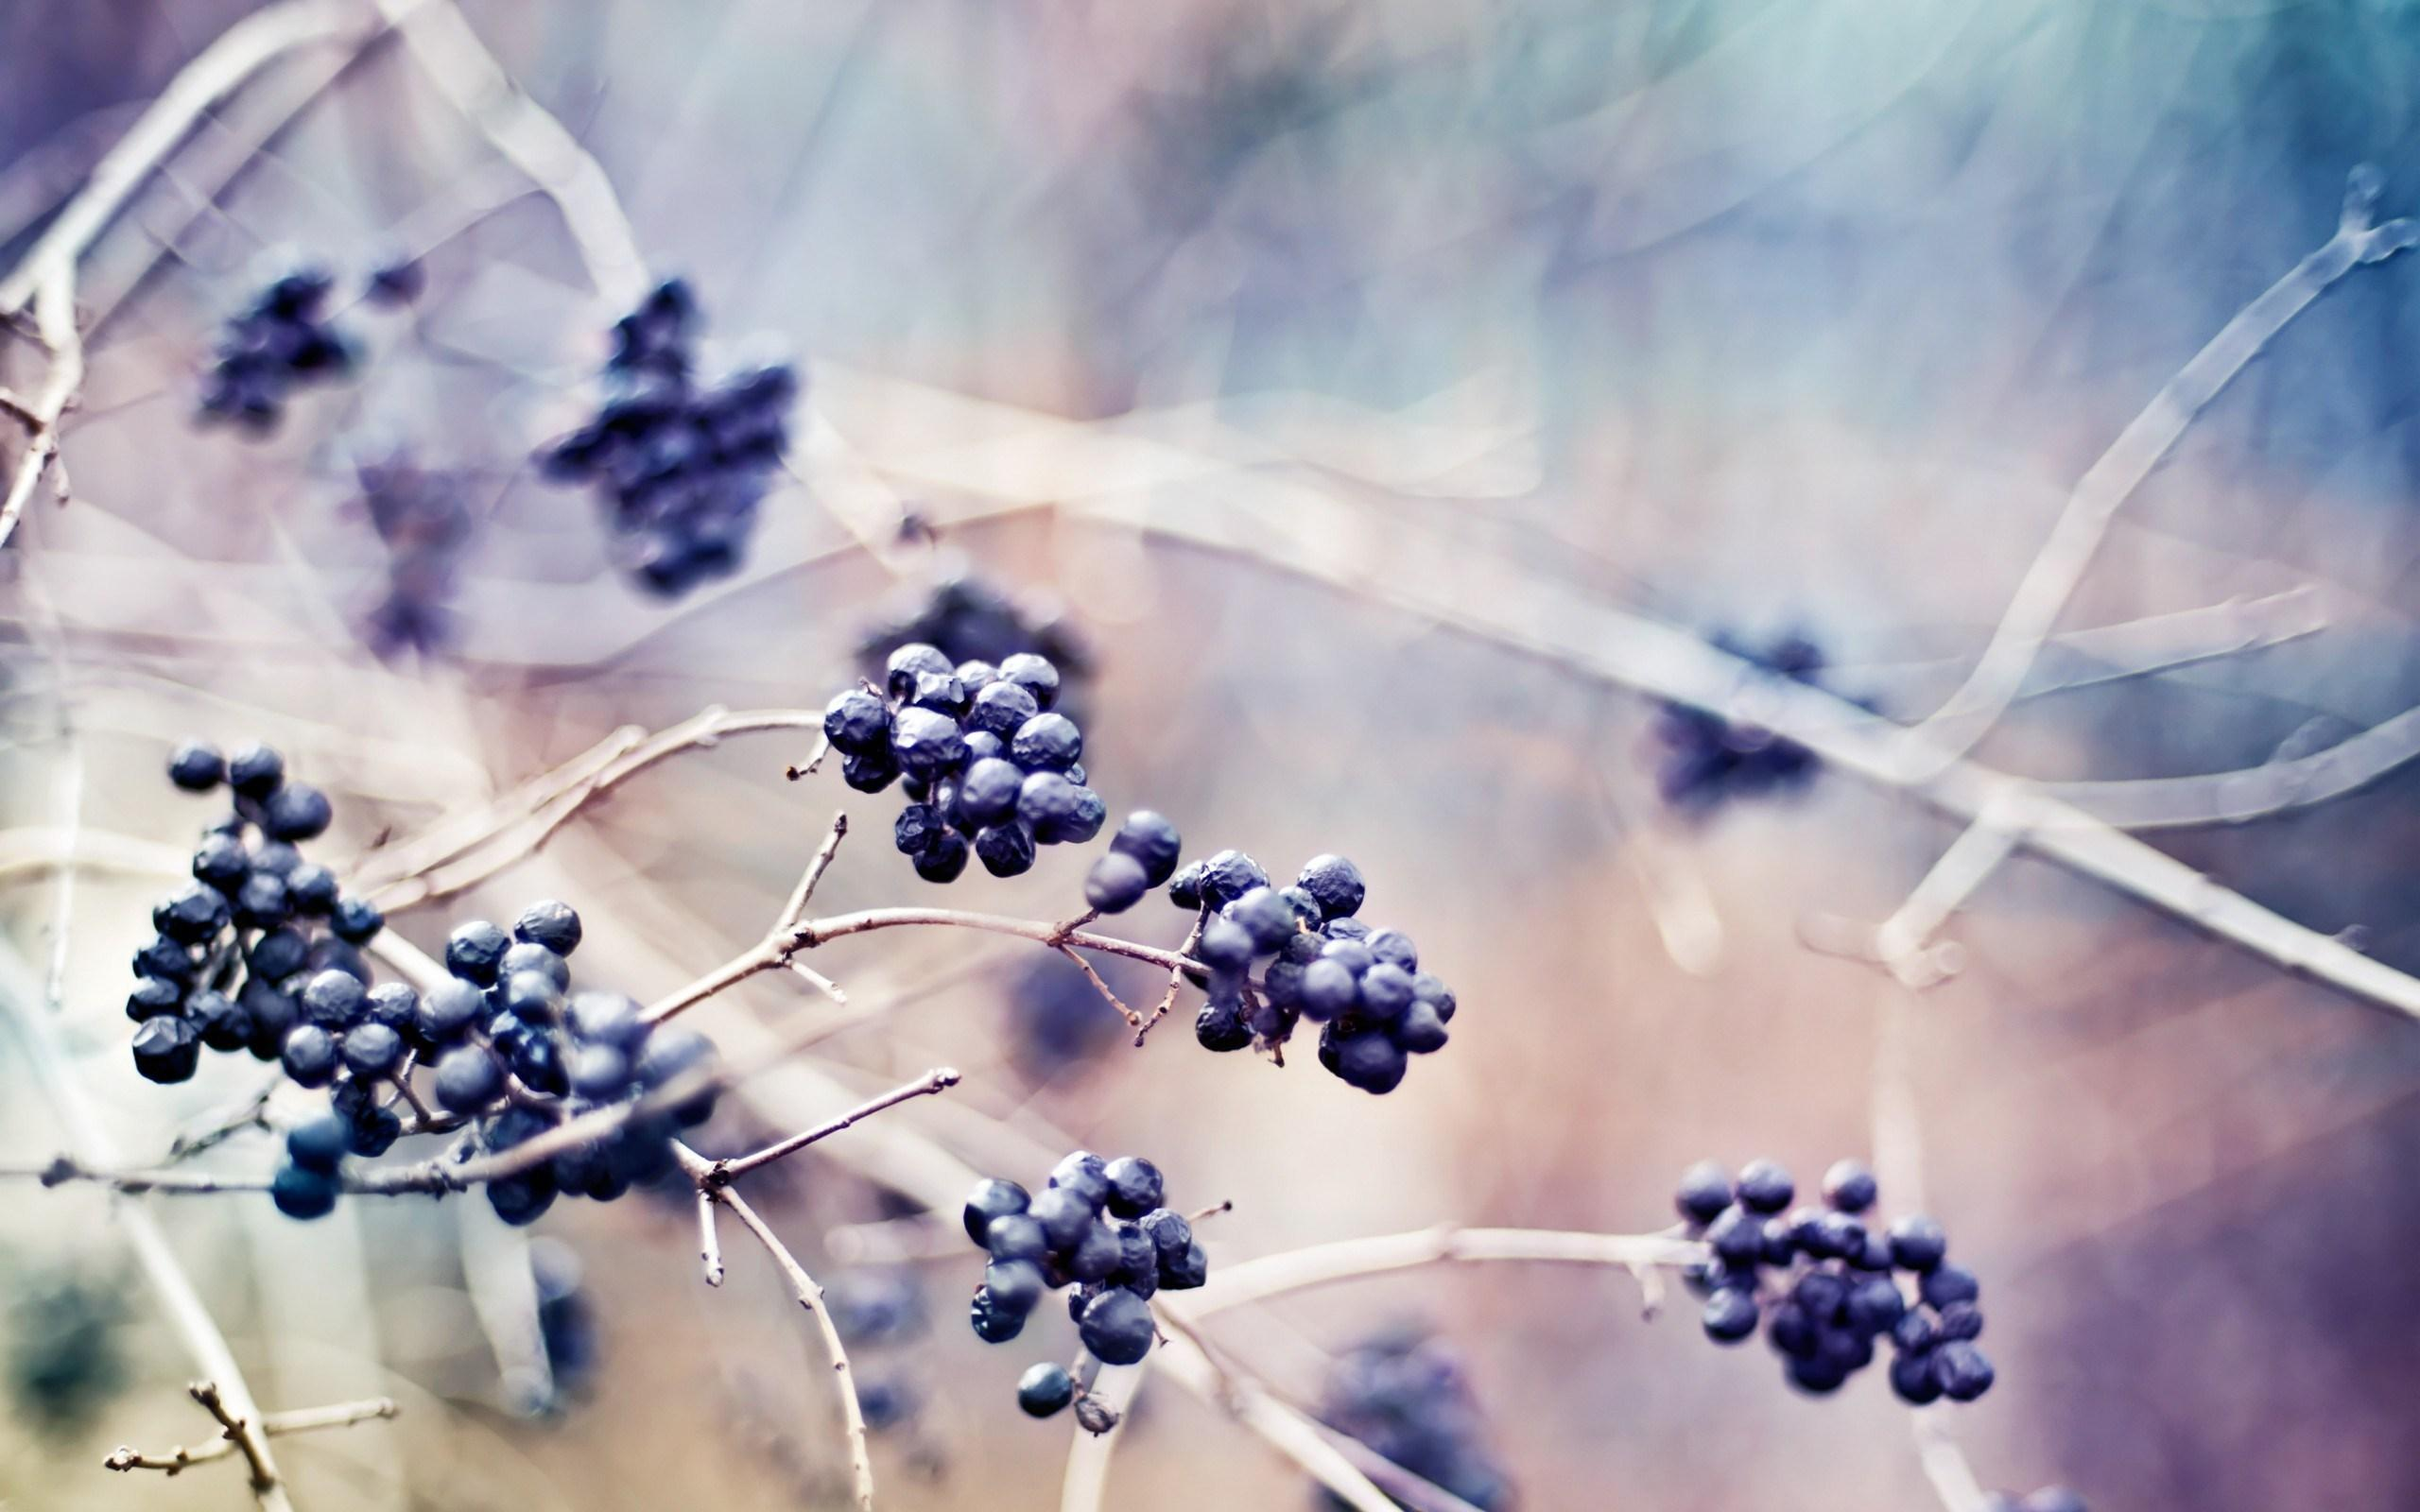 Berries Plants Branches Nature Macro Photo wallpapers